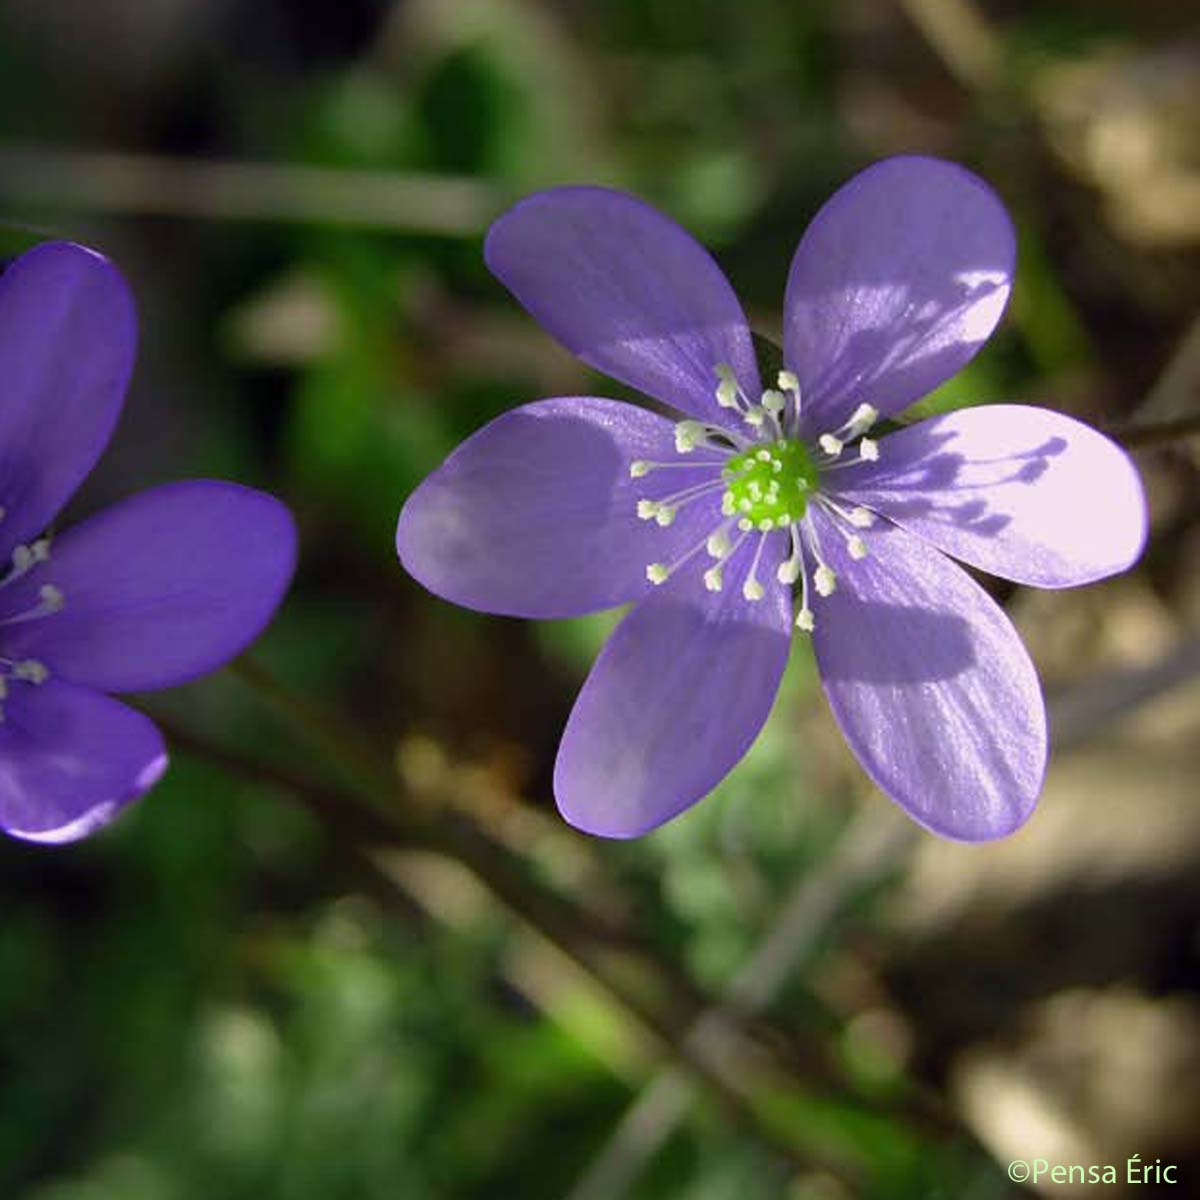 Anémone hépatique - Anemone hepatica